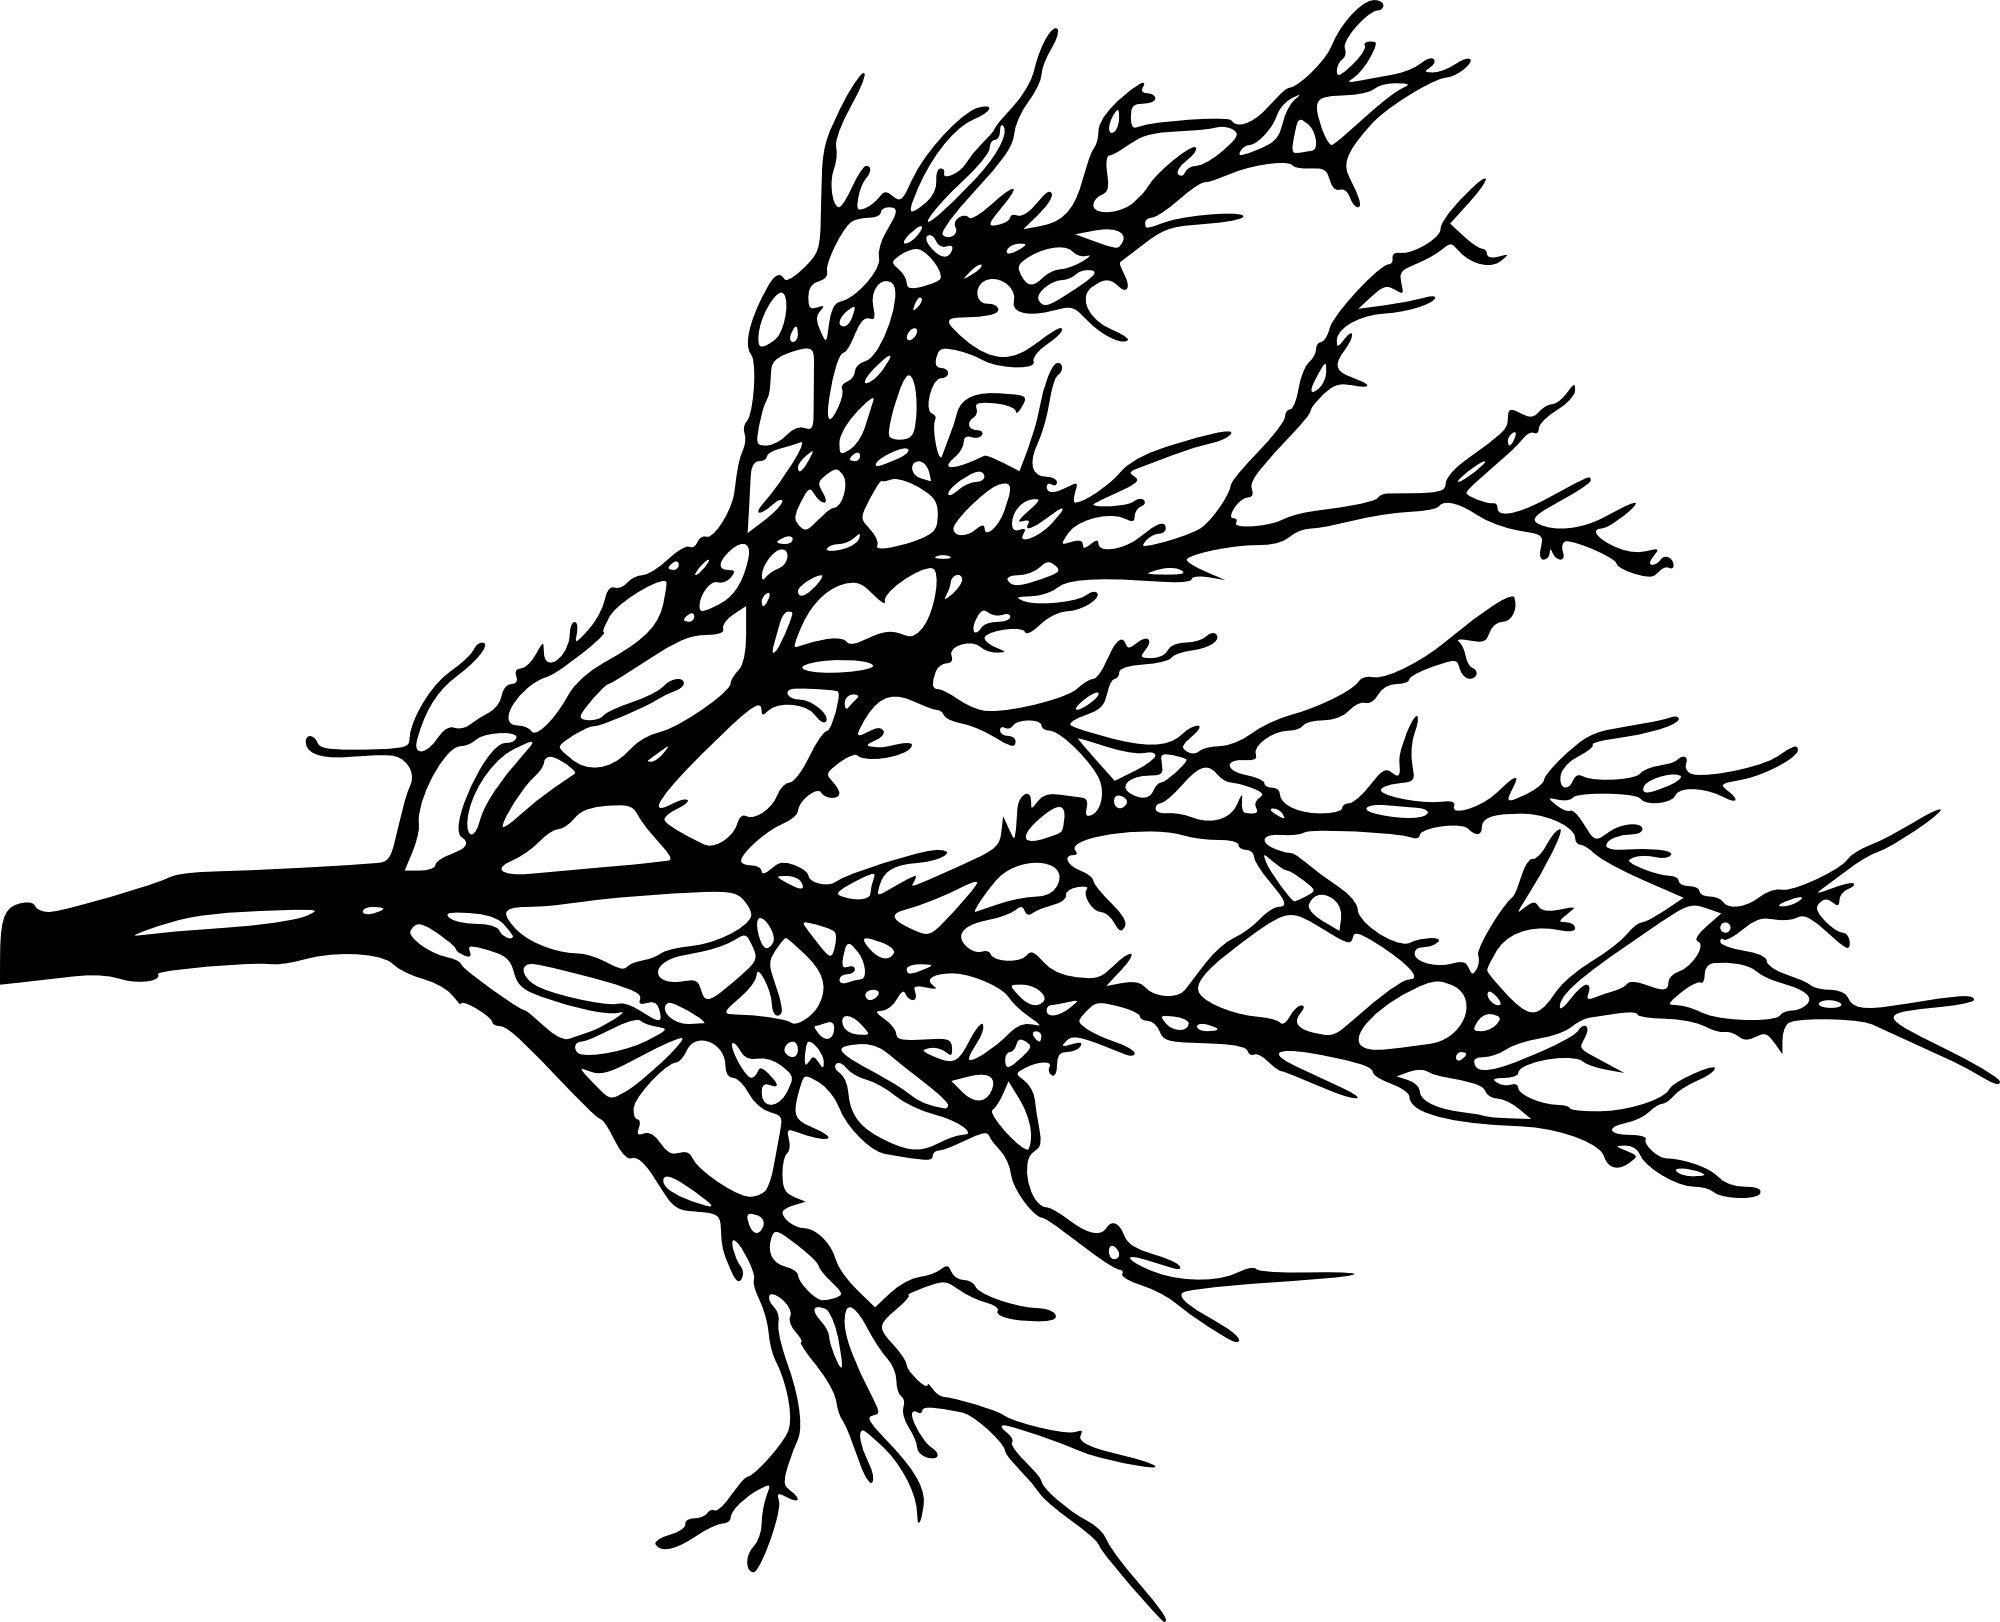 Black and white tree branch clipart clipart free download Silhouette Tree Branches at GetDrawings.com | Free for personal use ... clipart free download